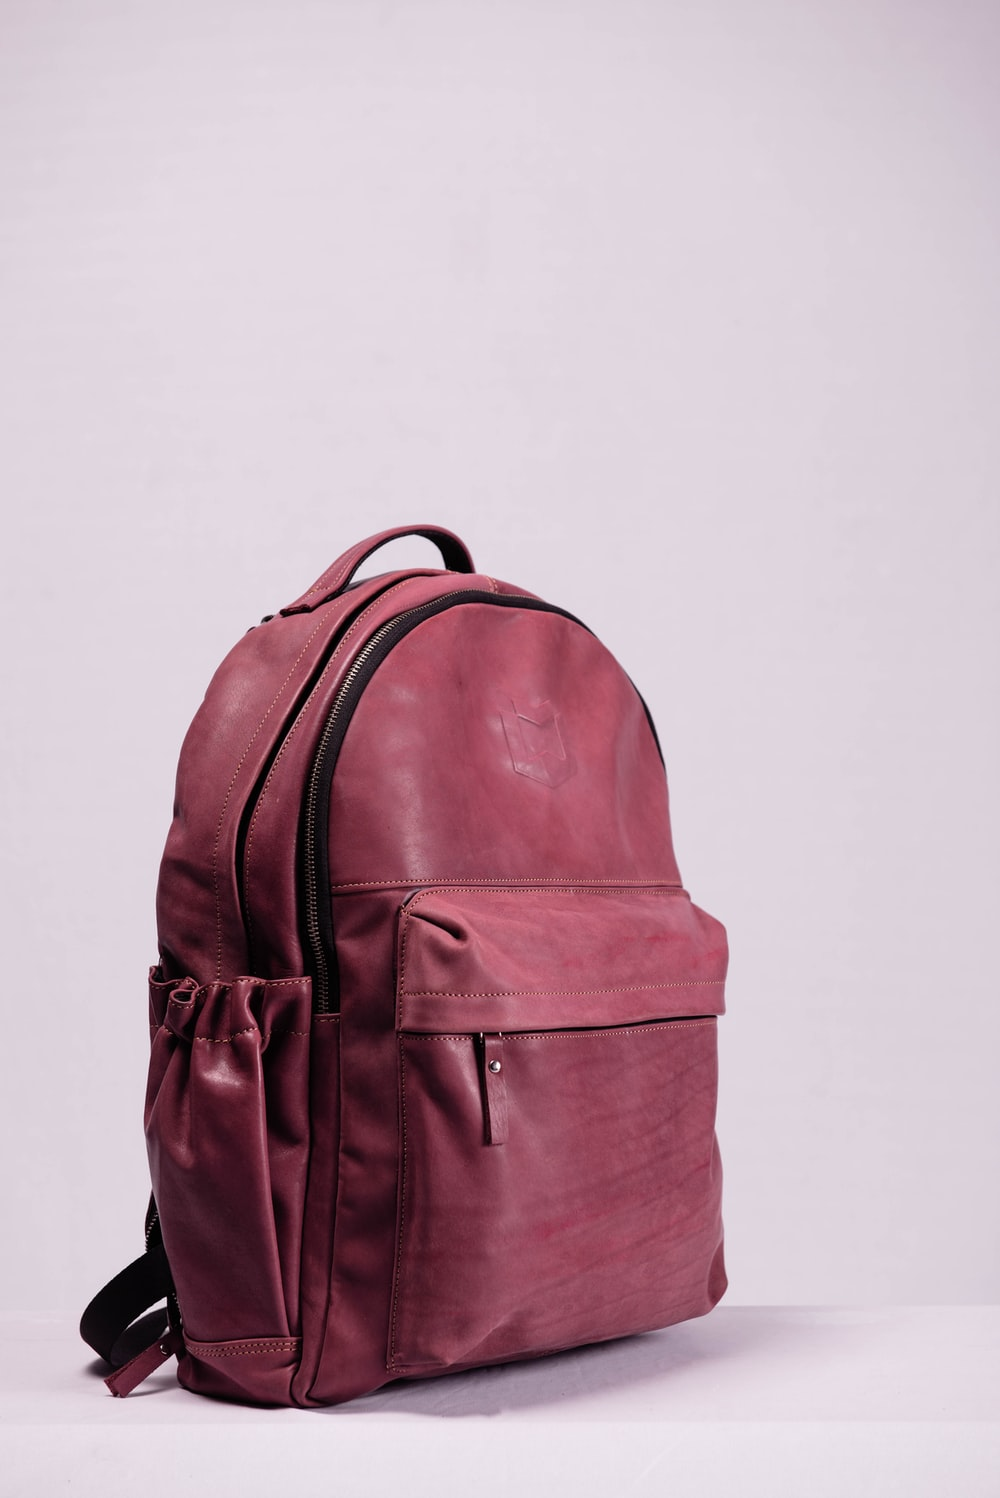 red leather backpack on white wall